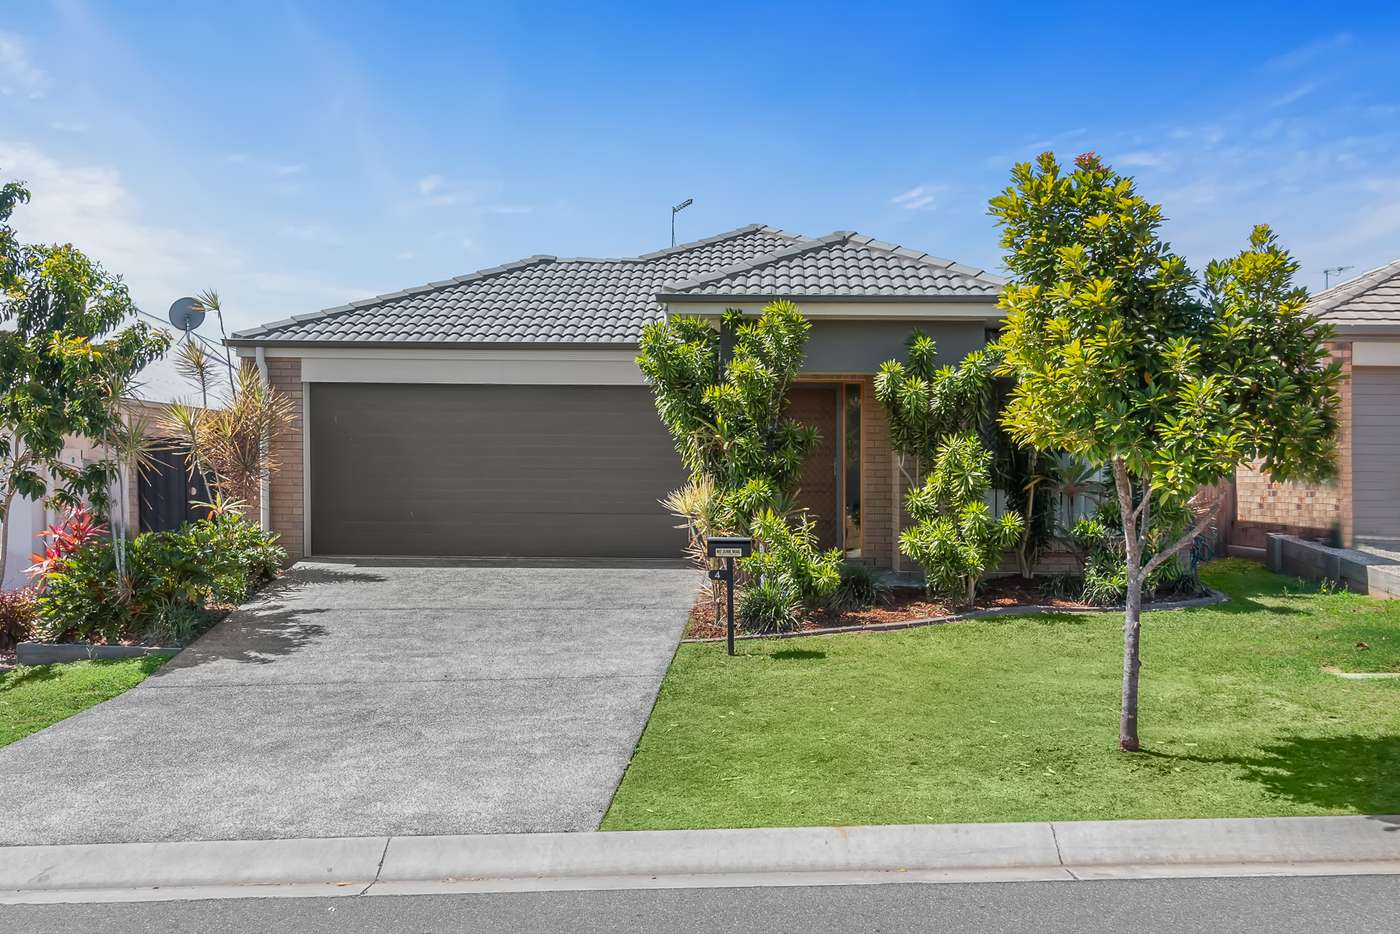 Main view of Homely house listing, 4 Bayleaf Street, Griffin QLD 4503